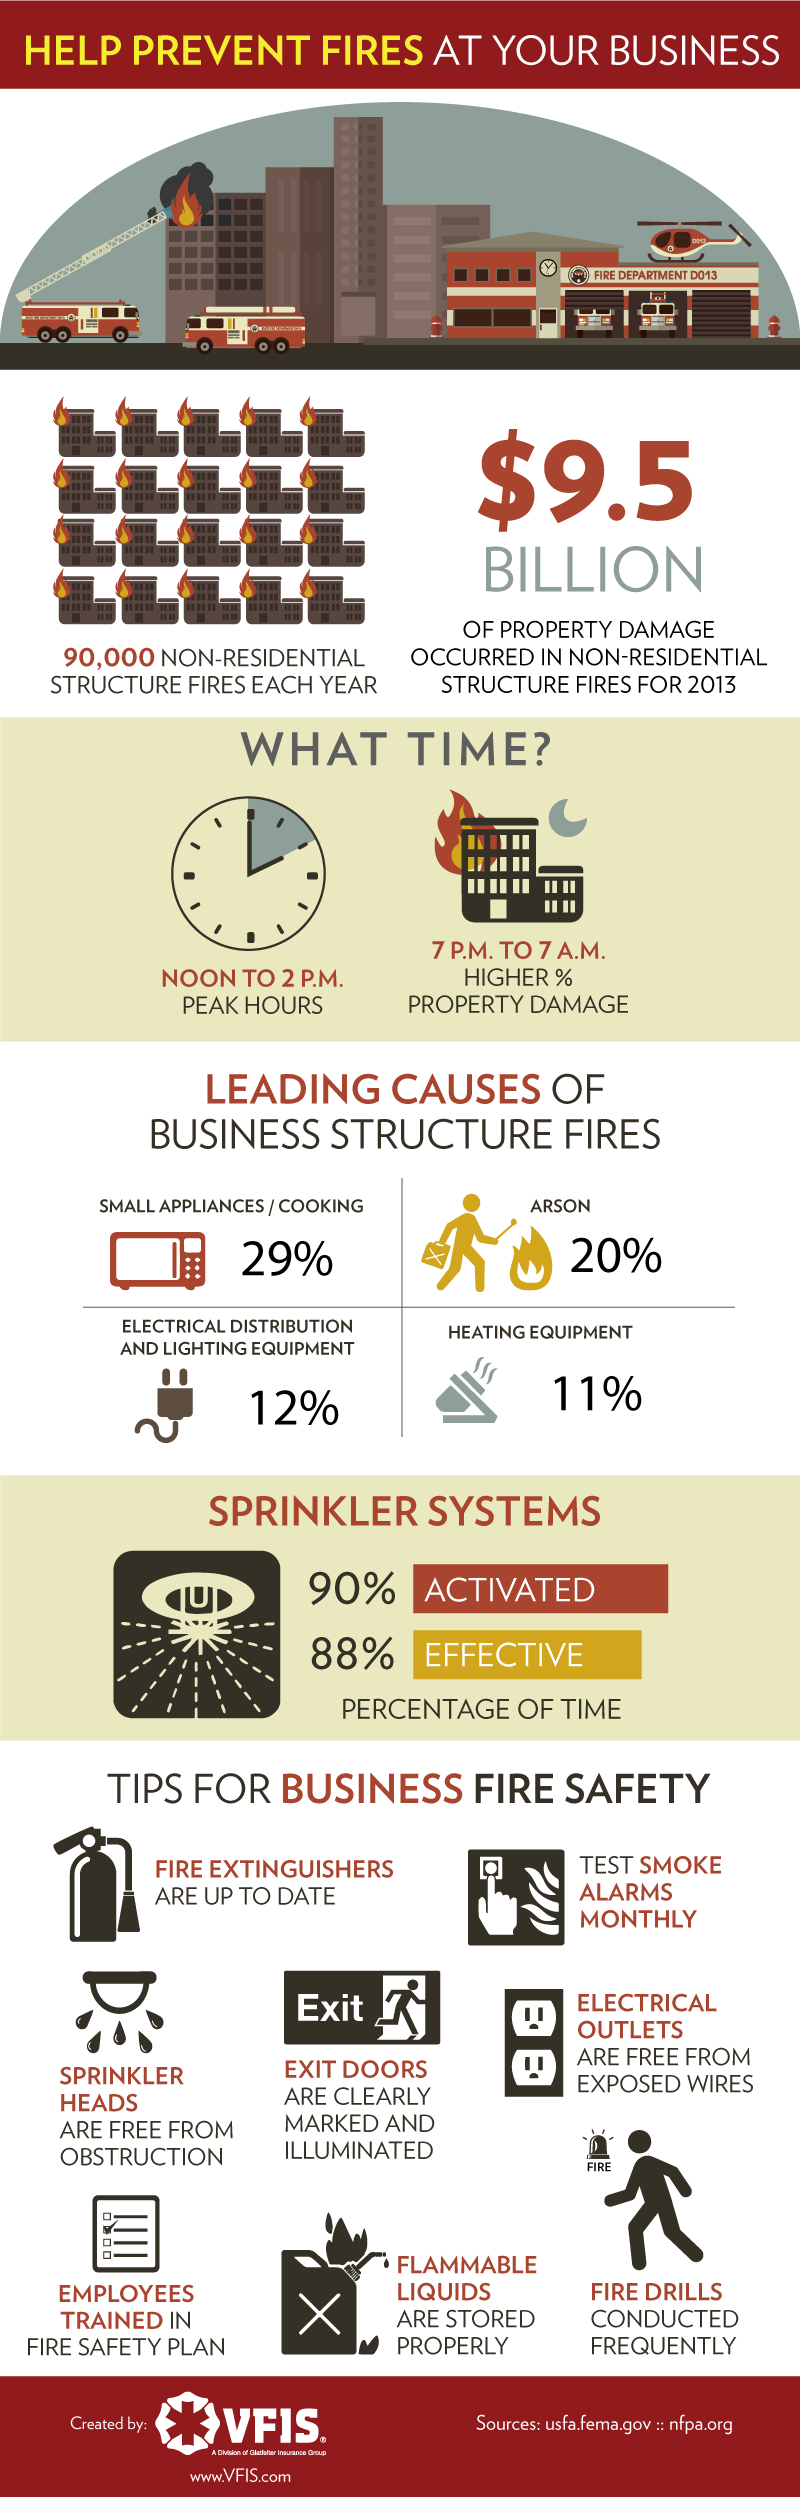 Fires can happen unexpectedly so it's important to take proactive steps to ensure the safety of your employees and your...